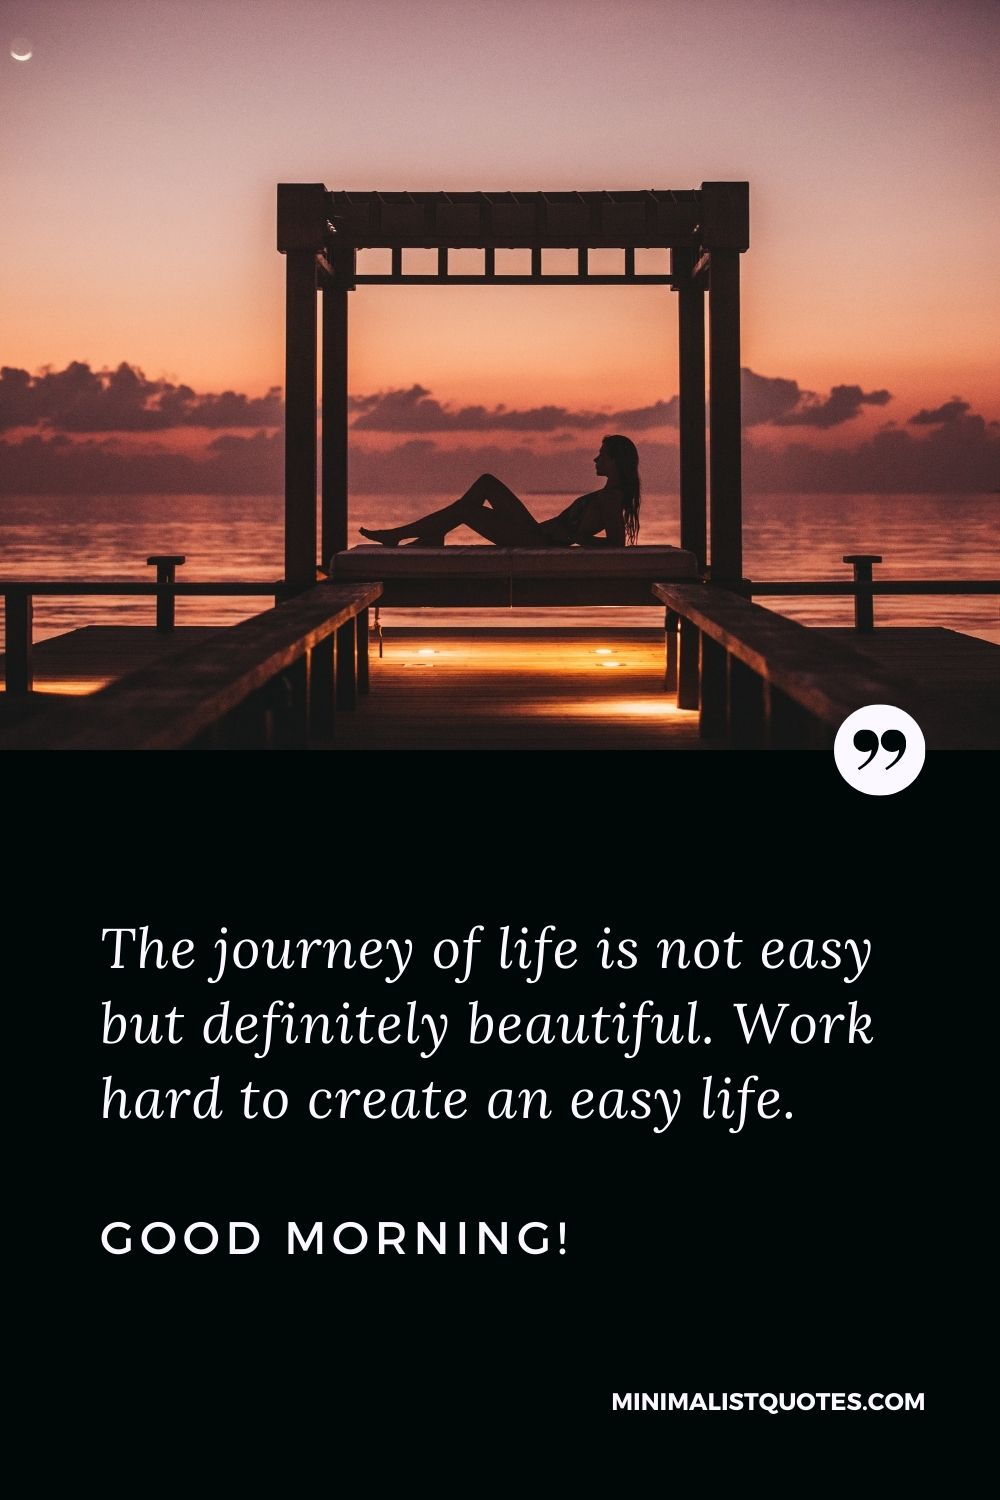 Positive Morning Quote: The journey of life is not easy but definitely beautiful. Work hard to create an easy life. Good Morning!